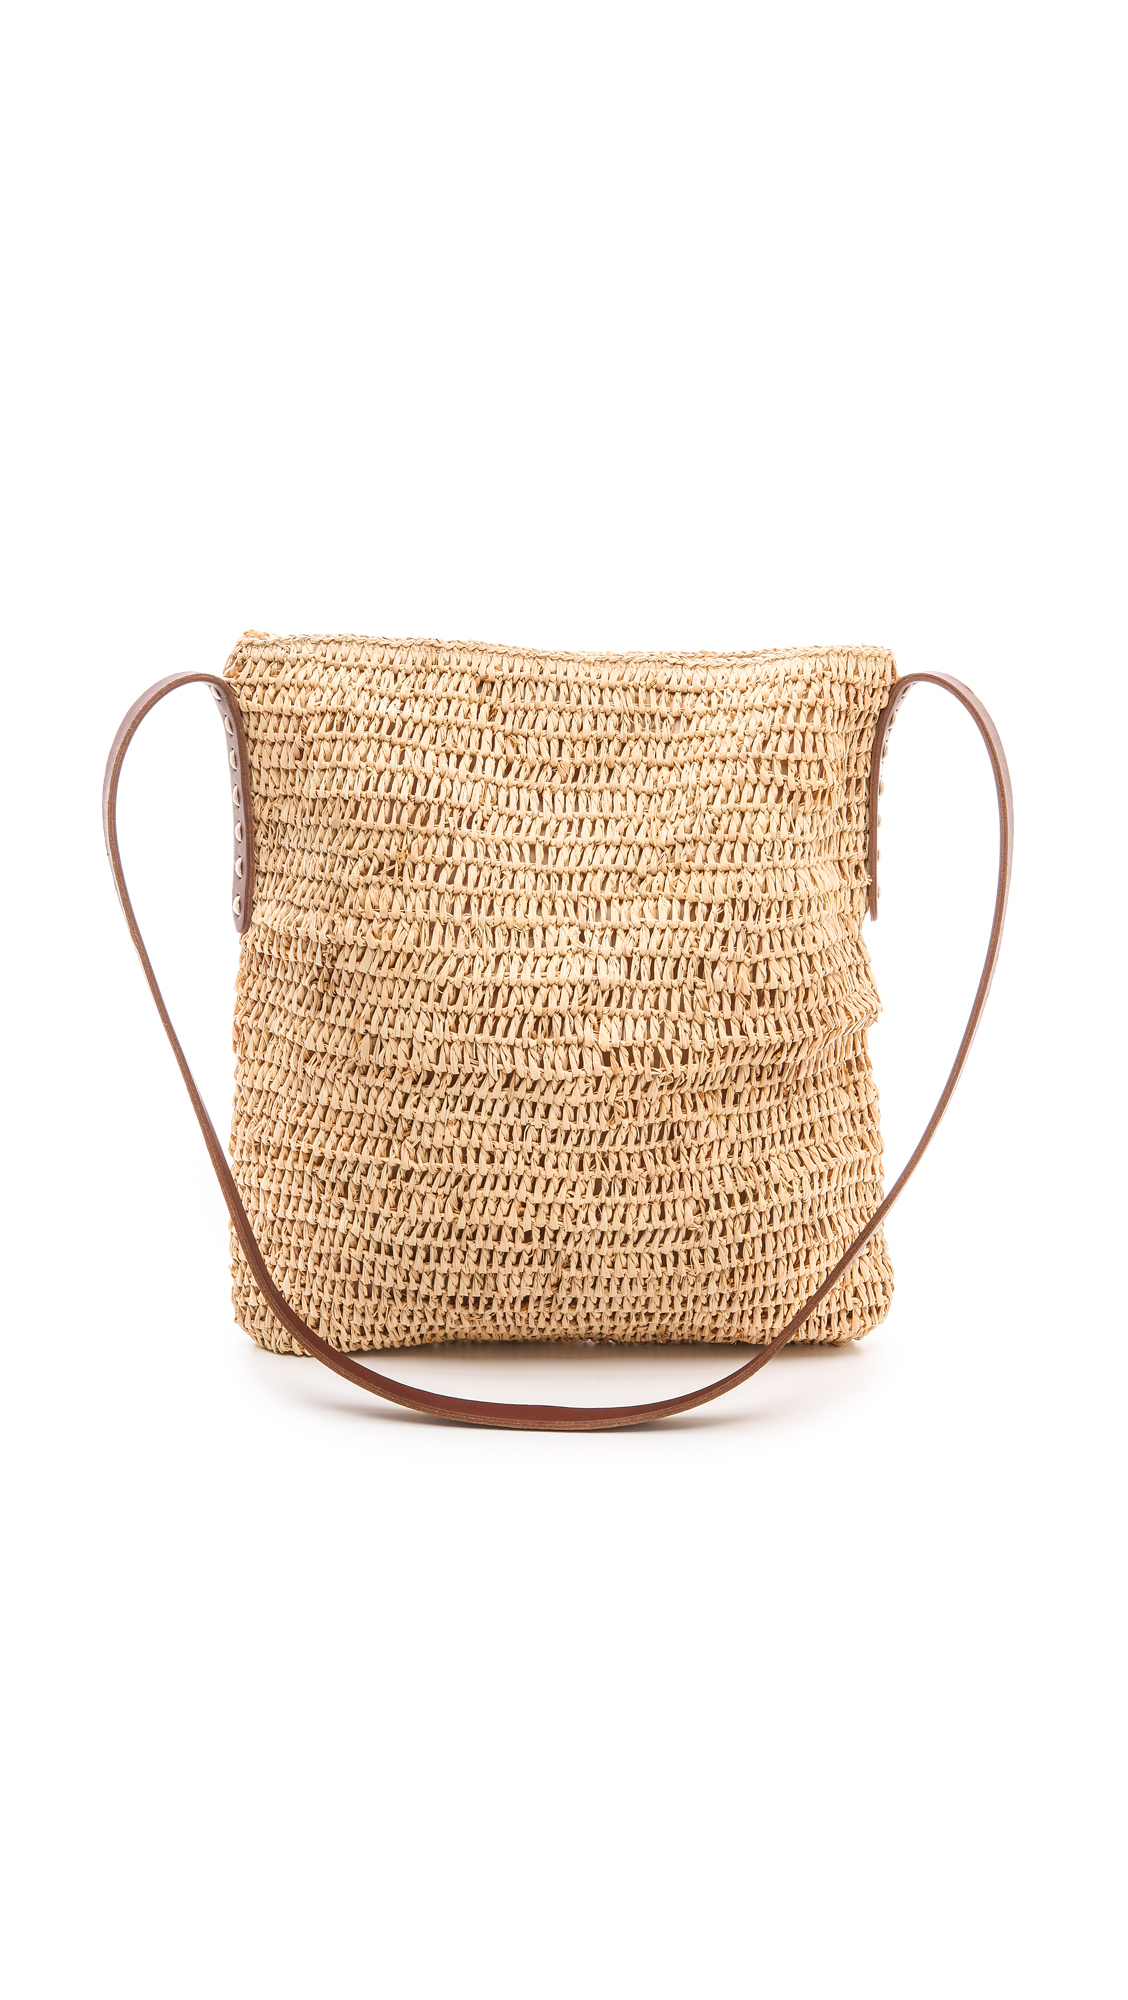 9ff5f31918 Bop Basics Raffia Cross Body Bag | SHOPBOP